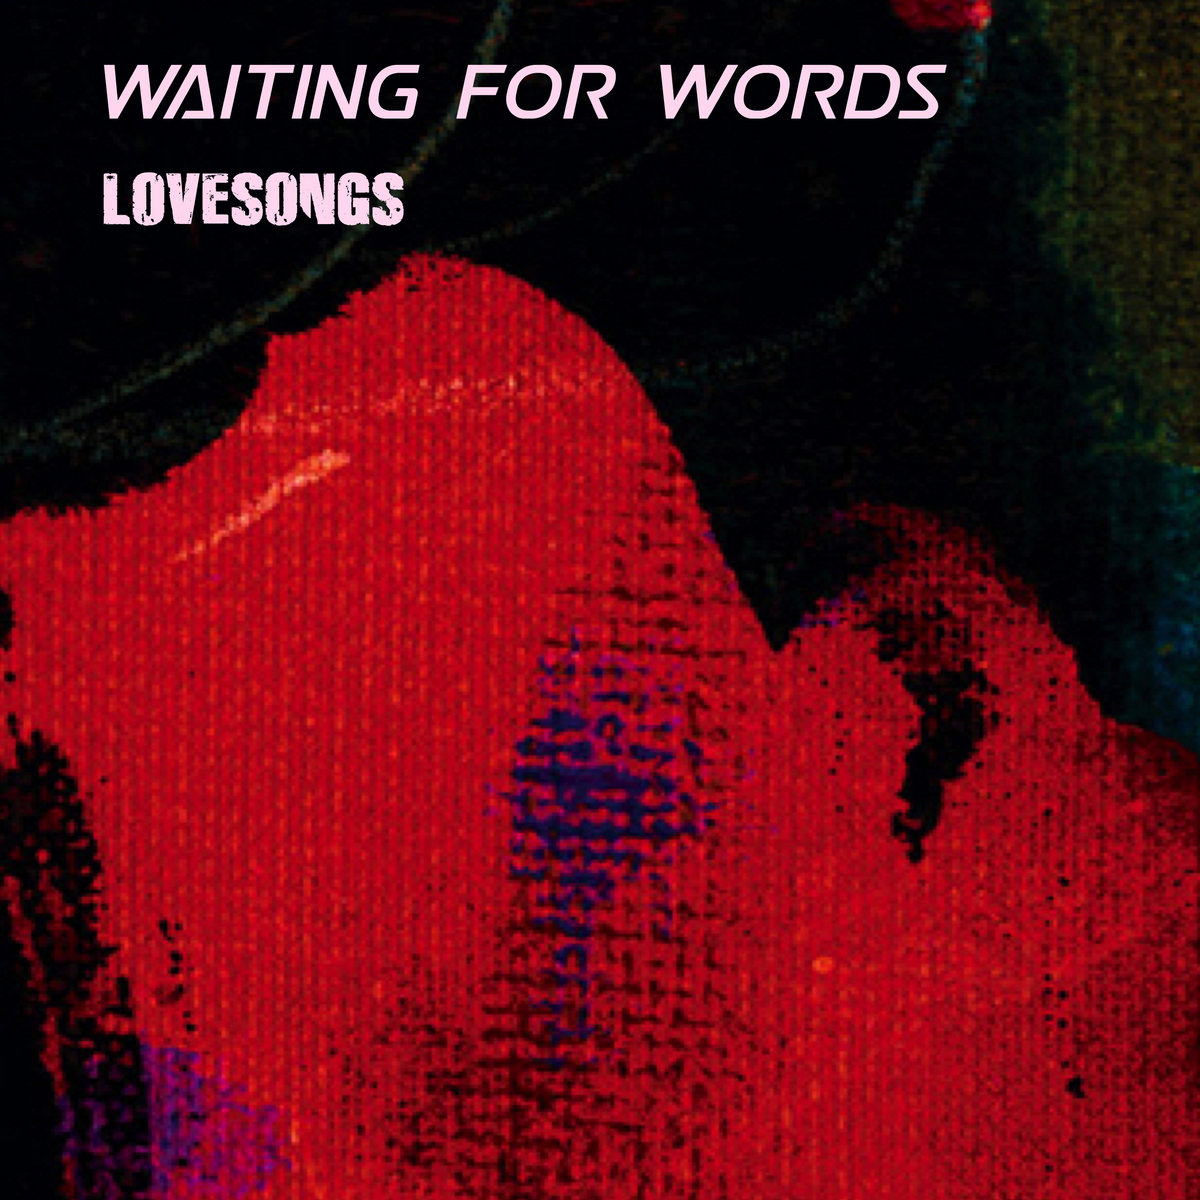 love is a four letter word album cover - lovesongs 12 covers from the cure waiting for words